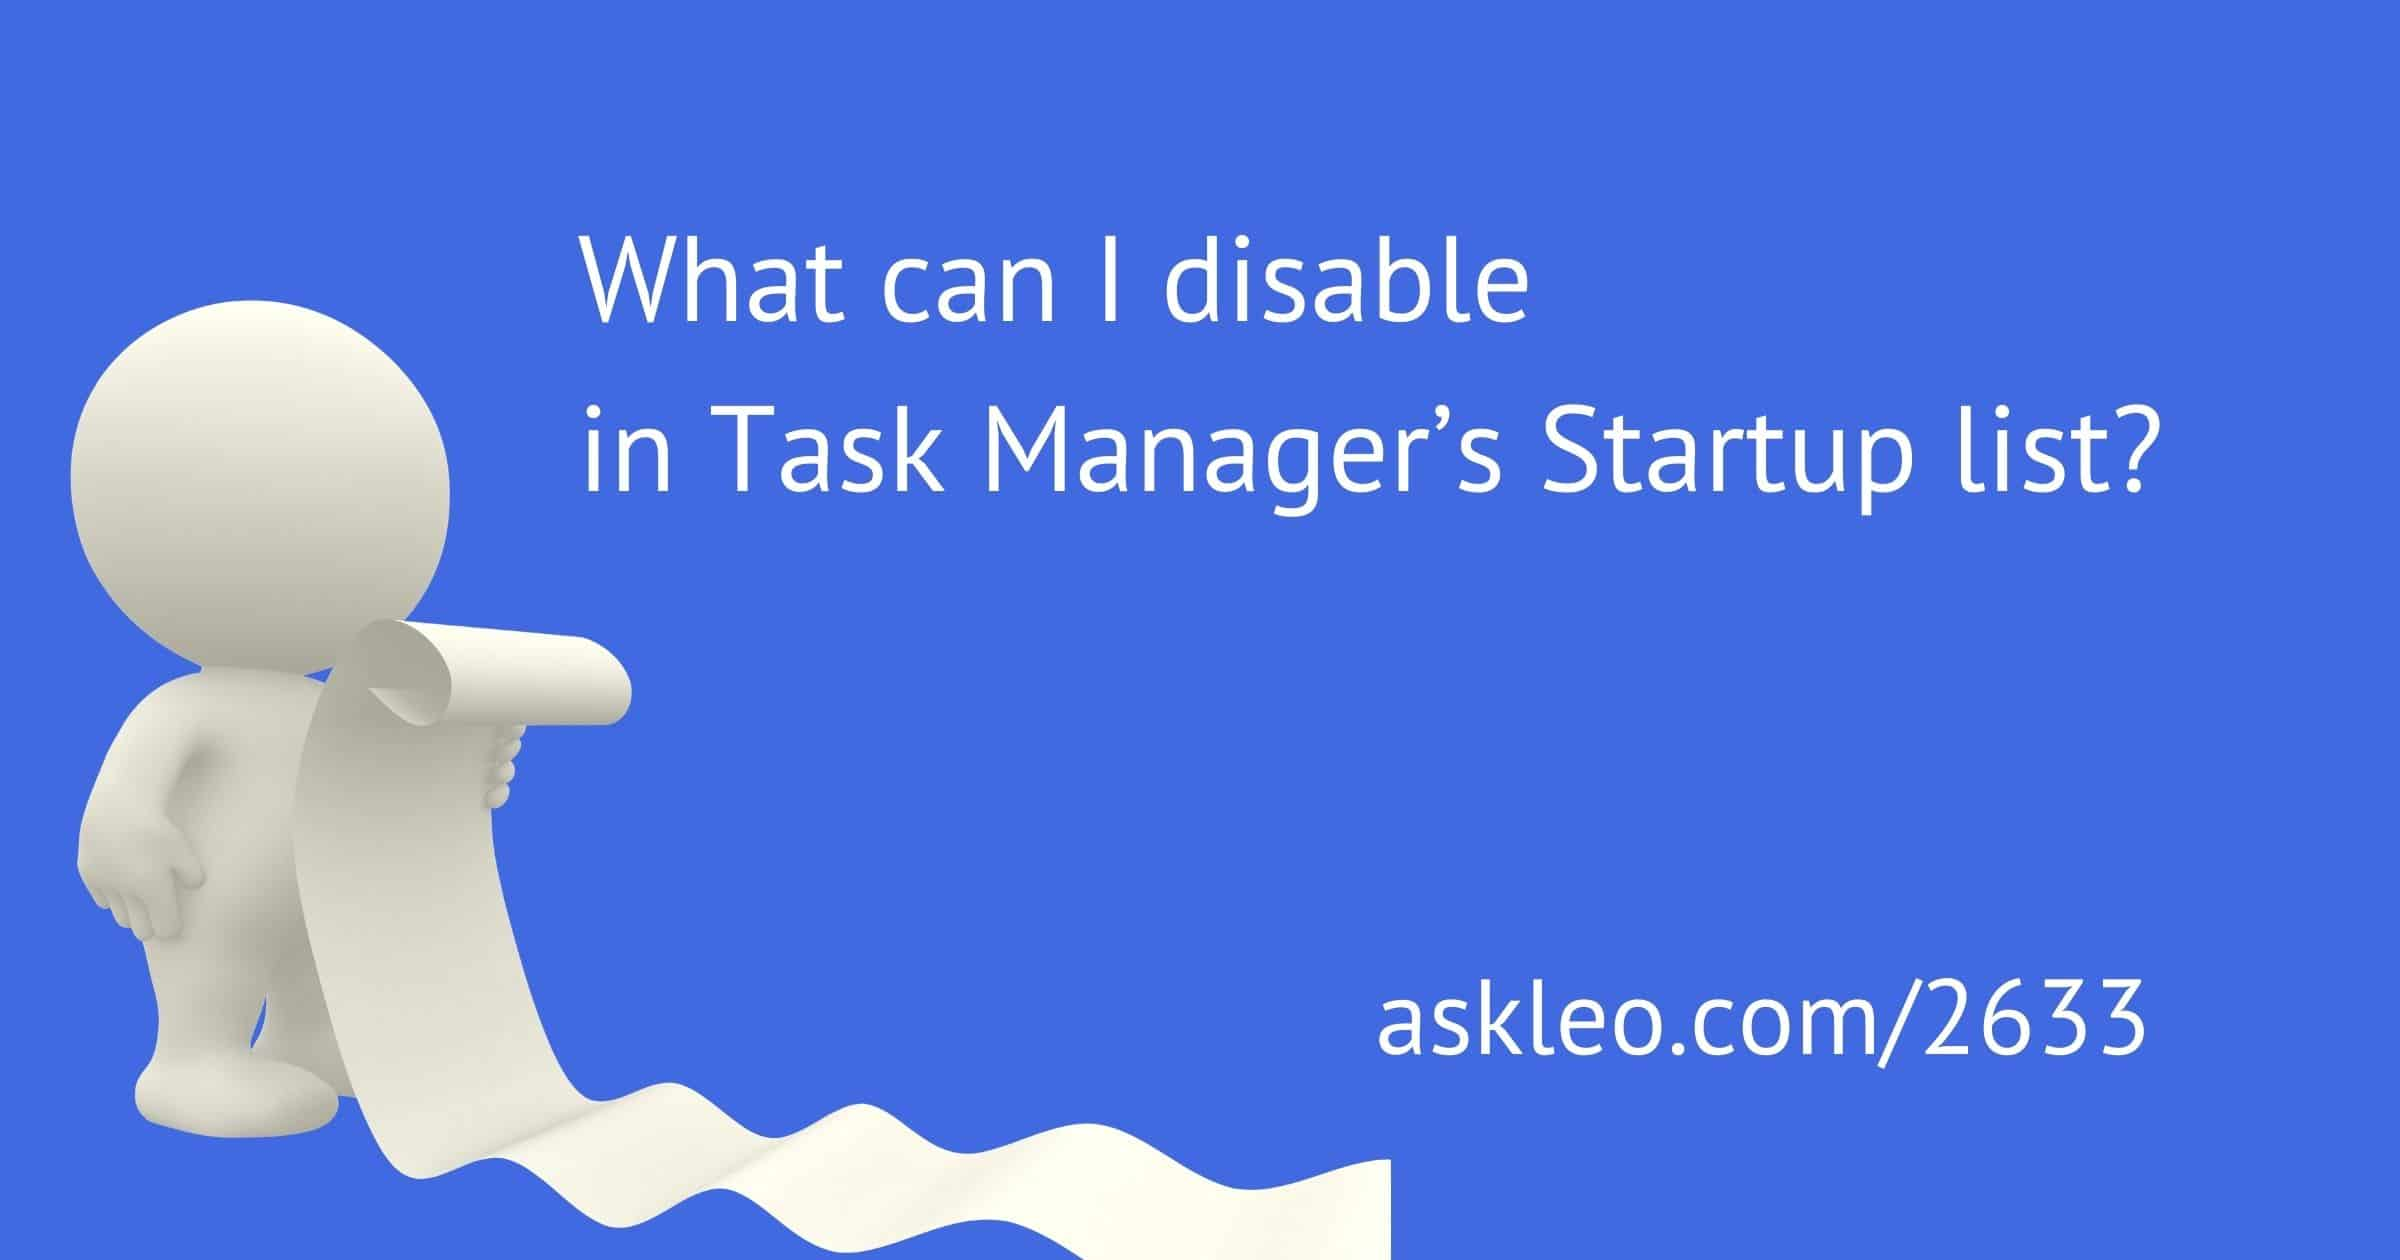 What Can I Disable in Task Manager's Startup List?